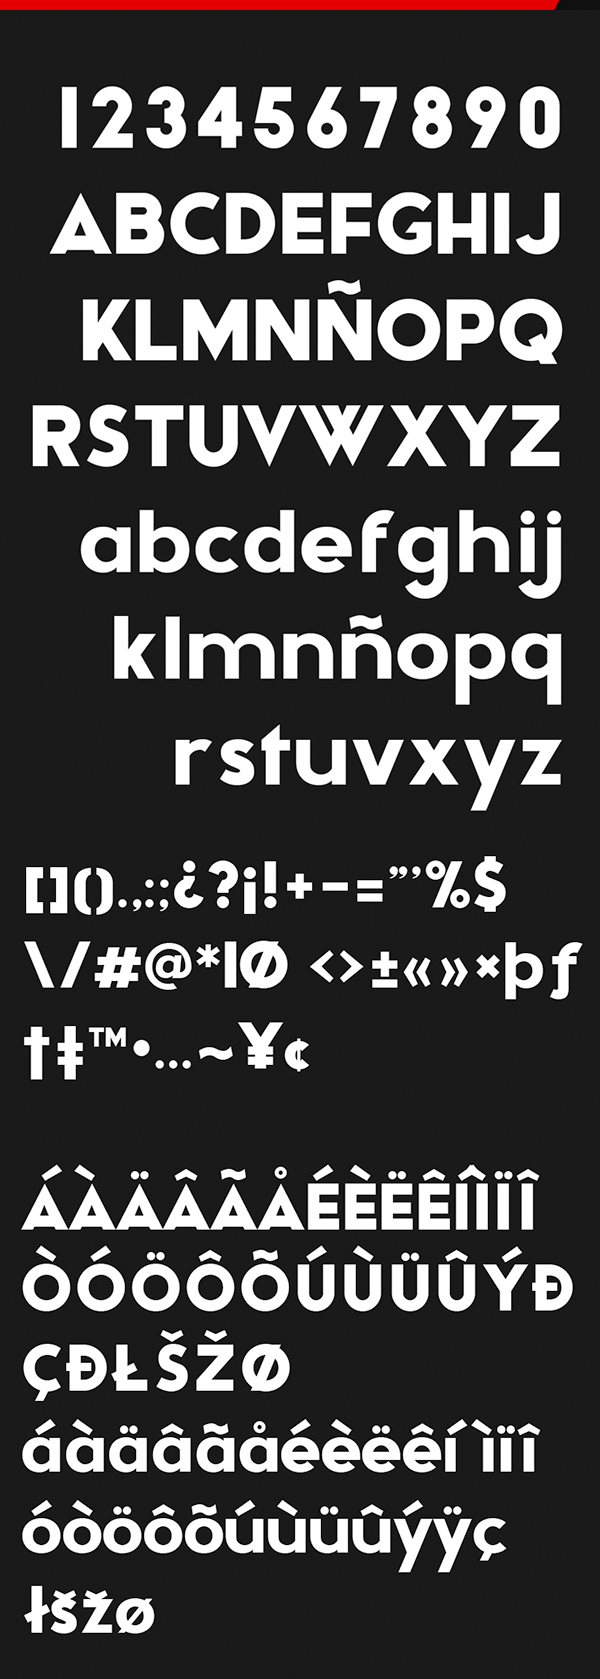 Adca Font Letters